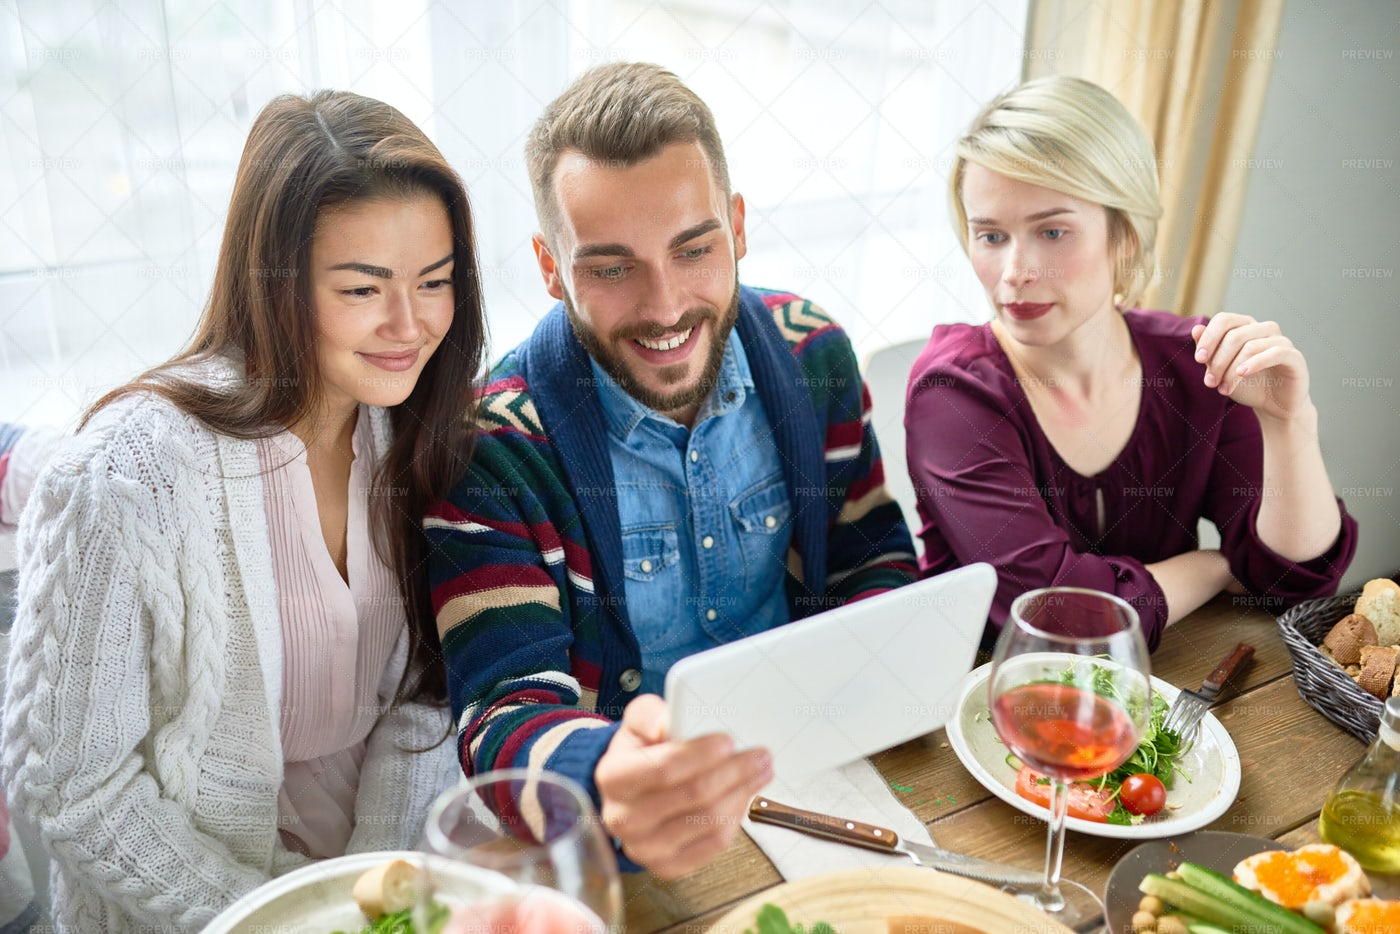 Young People Video Calling At...: Stock Photos